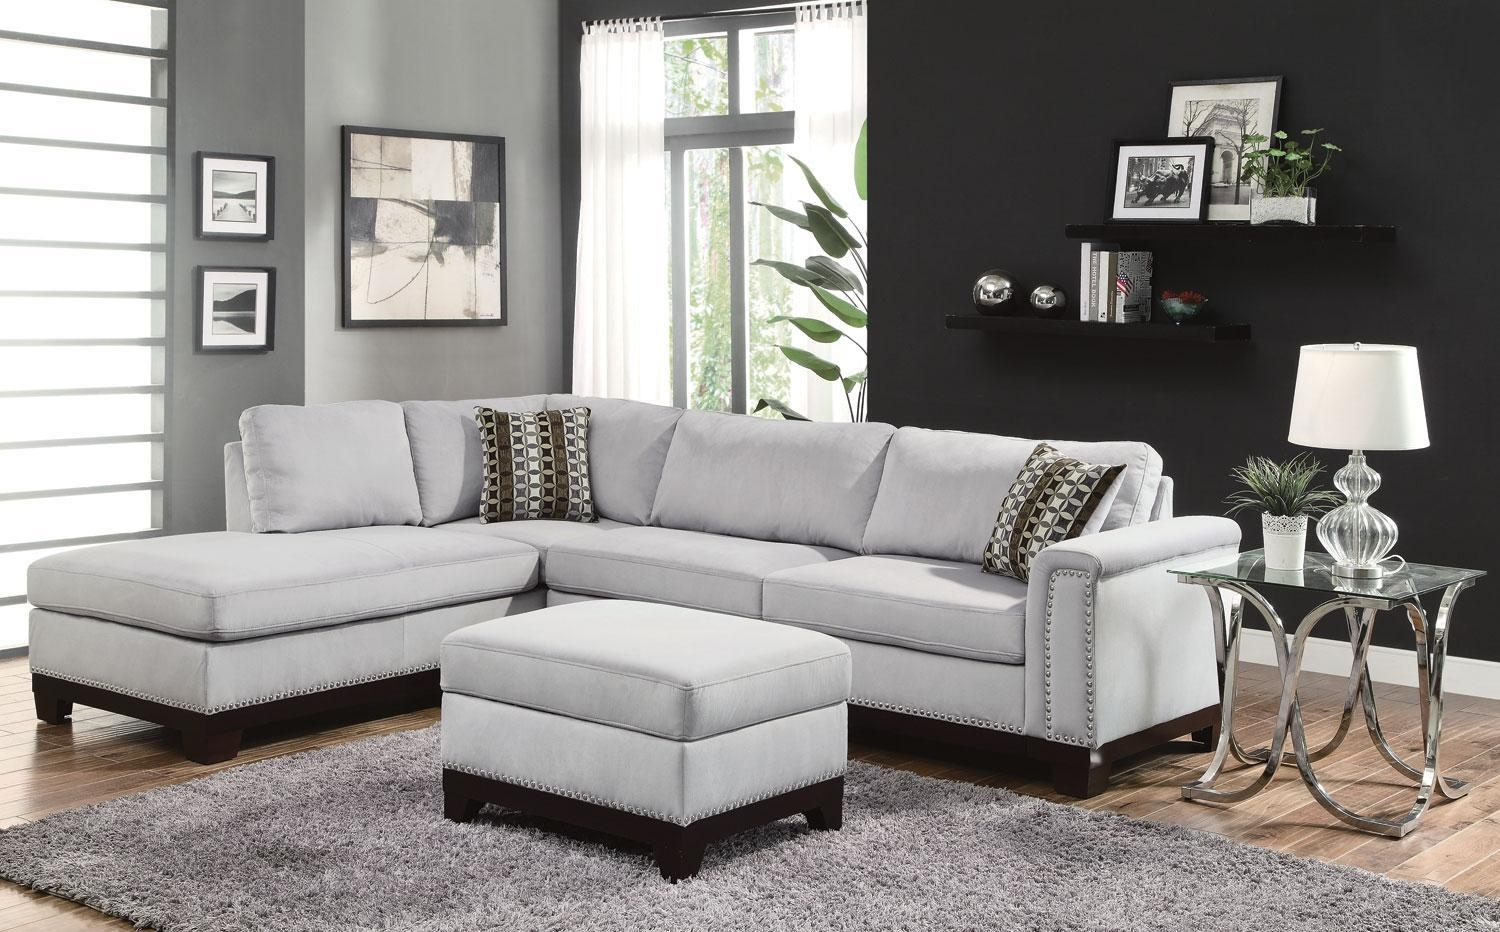 Epic Sectional Sofa With Nailhead Trim 17 In Office Sofa Ideas With With Sectional Sofas With Nailheads (Image 2 of 10)